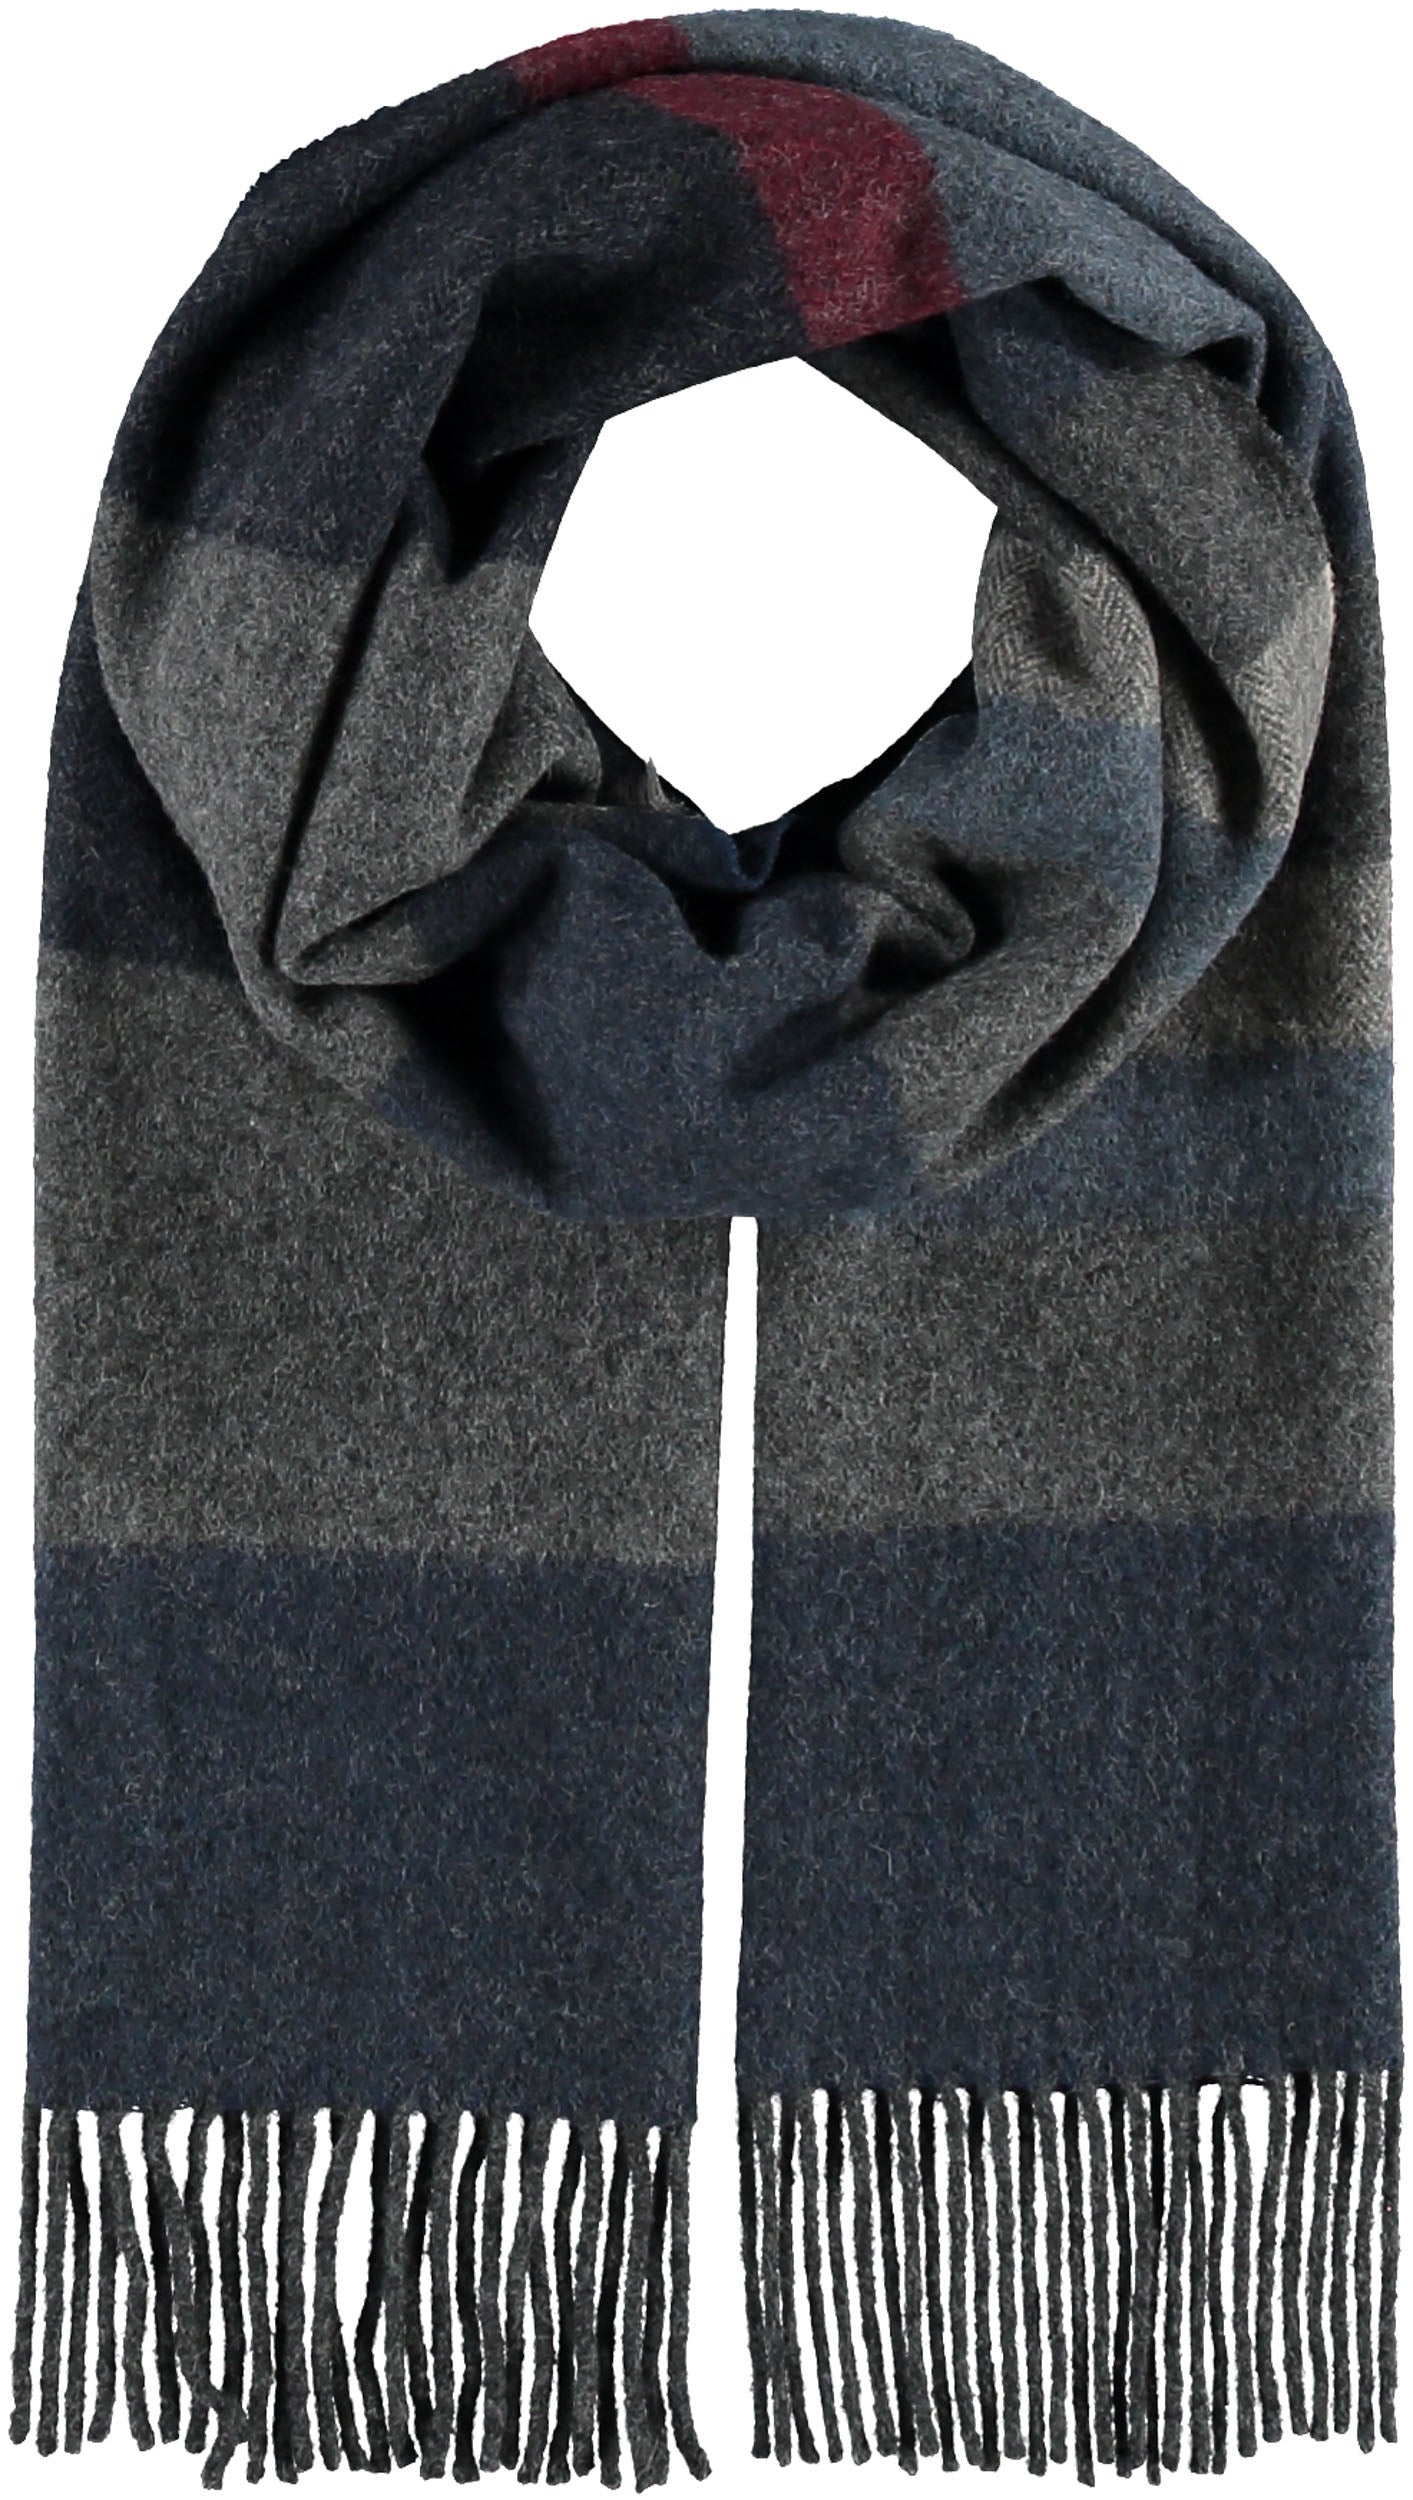 Christian Paul by sidonio's Block Stripe Scarf 318014